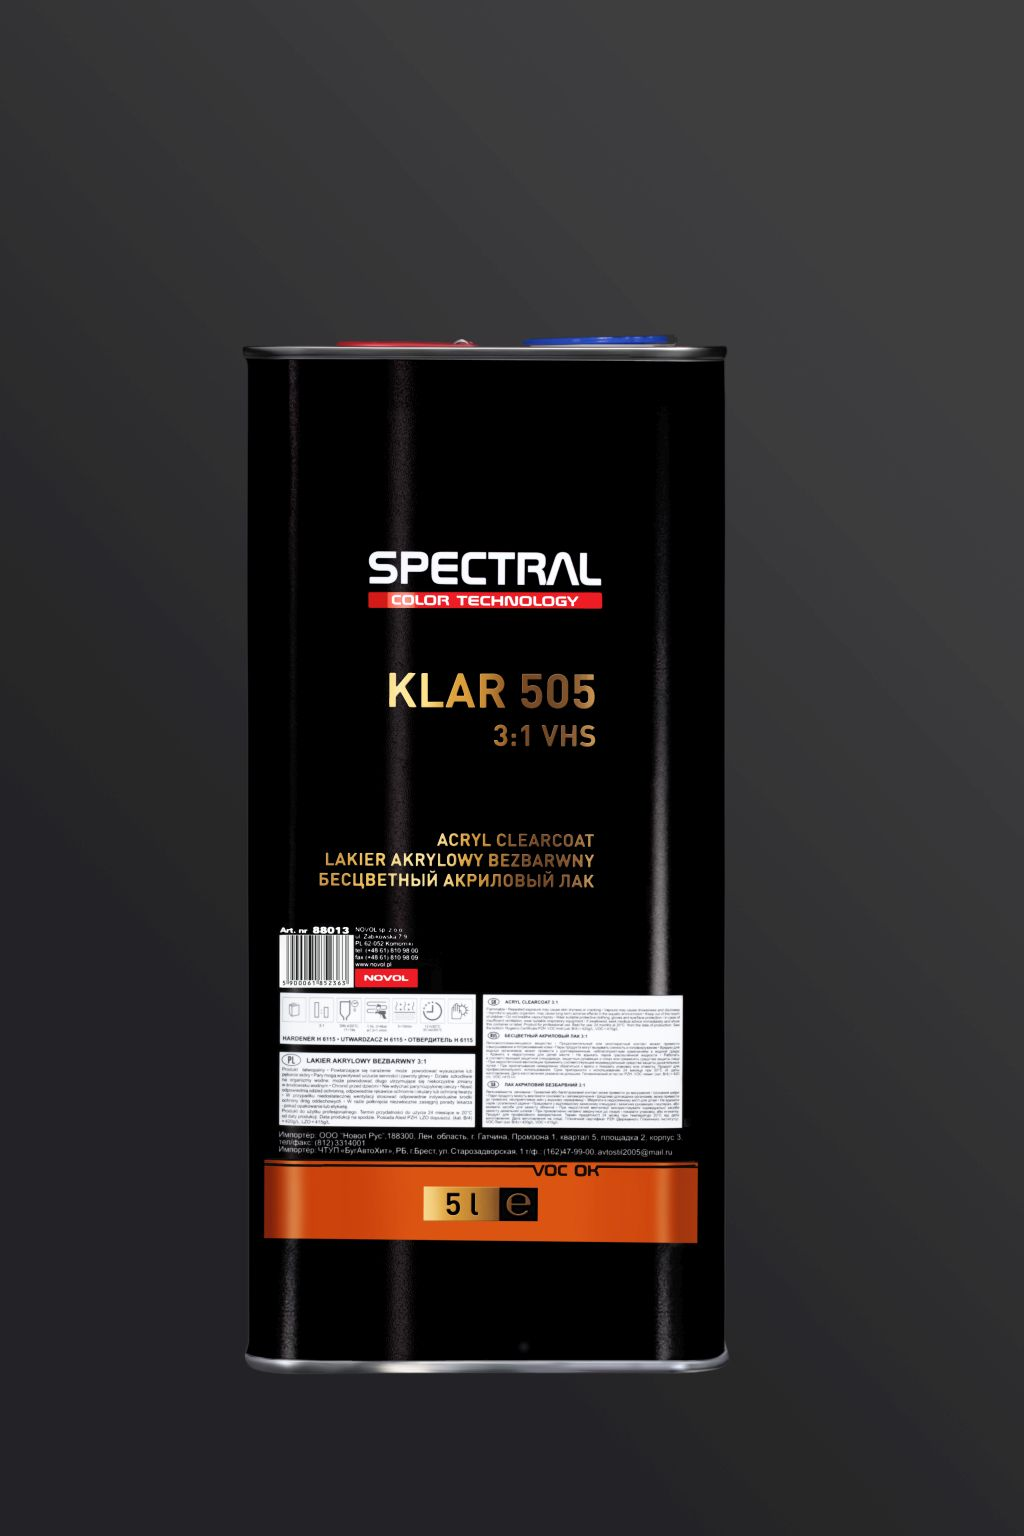 Spectral Klar 505 Two Component Vhs Clearcoat 3 1 Kit